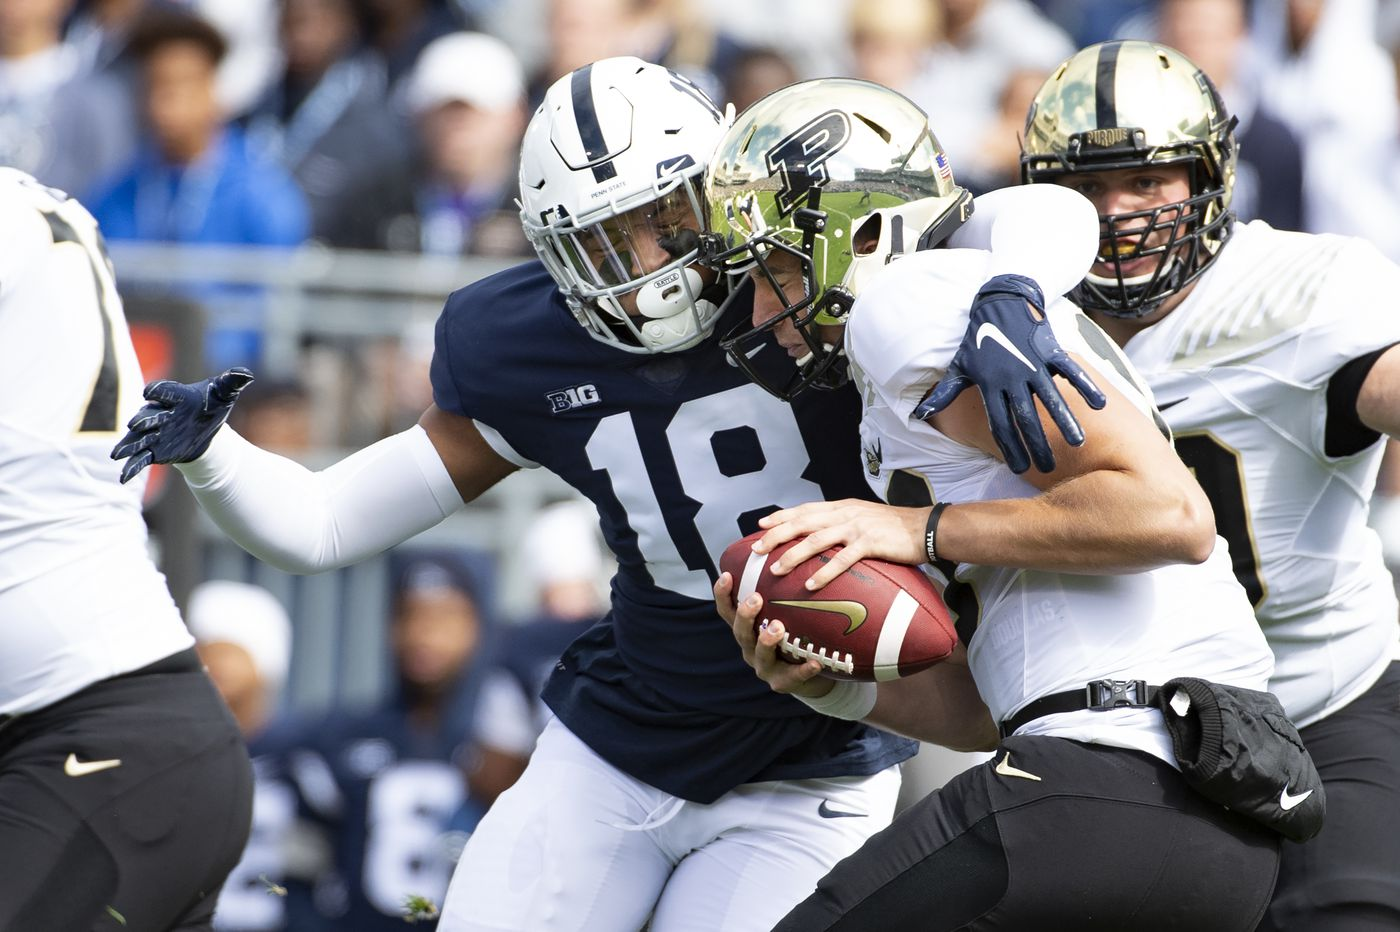 Imhotep Charter grad Shaka Toney happy and humbled to be voted a Penn State captain